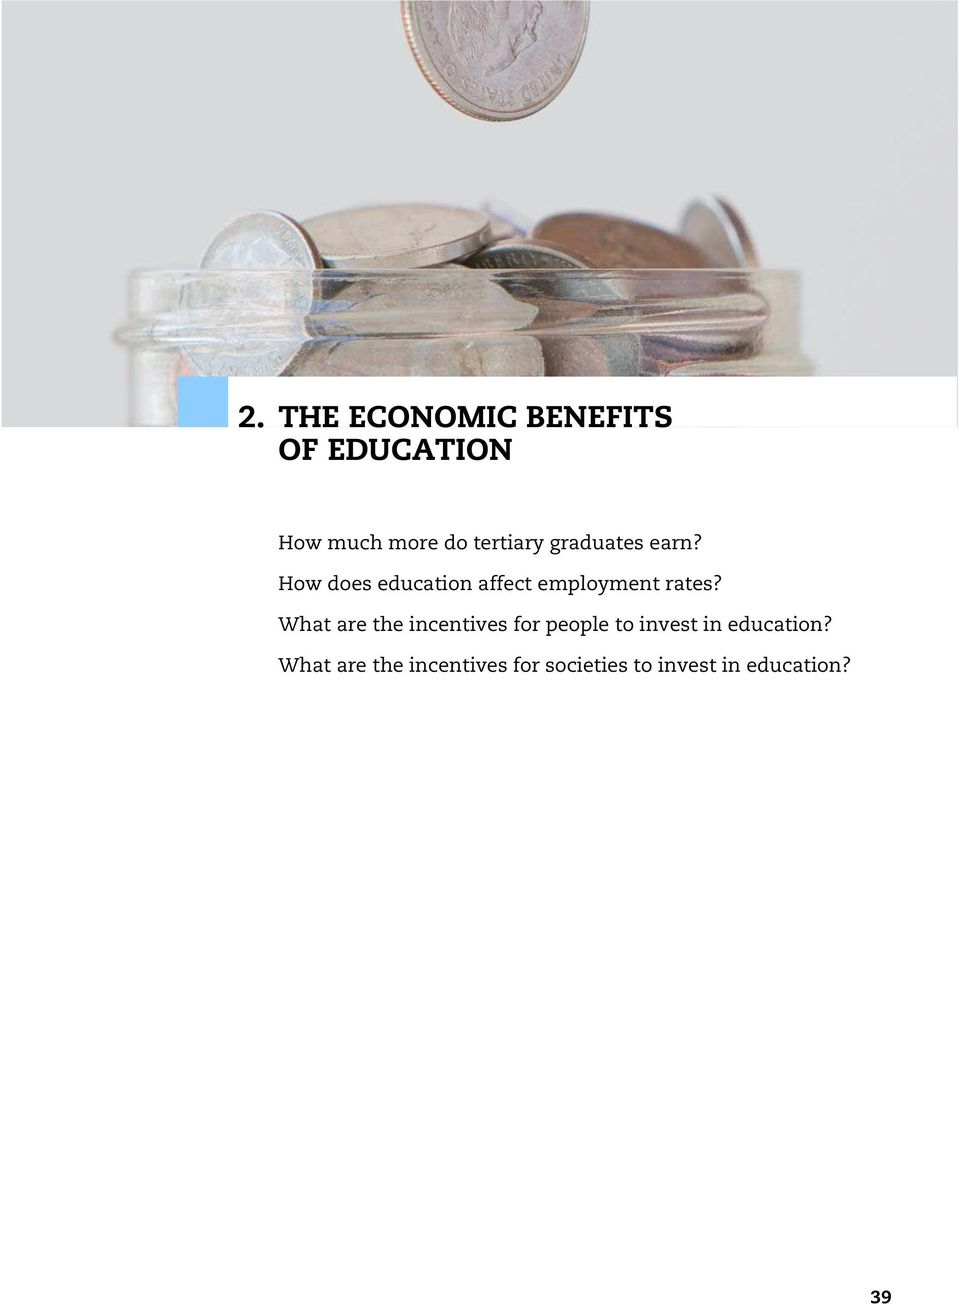 How does education affect employment rates?